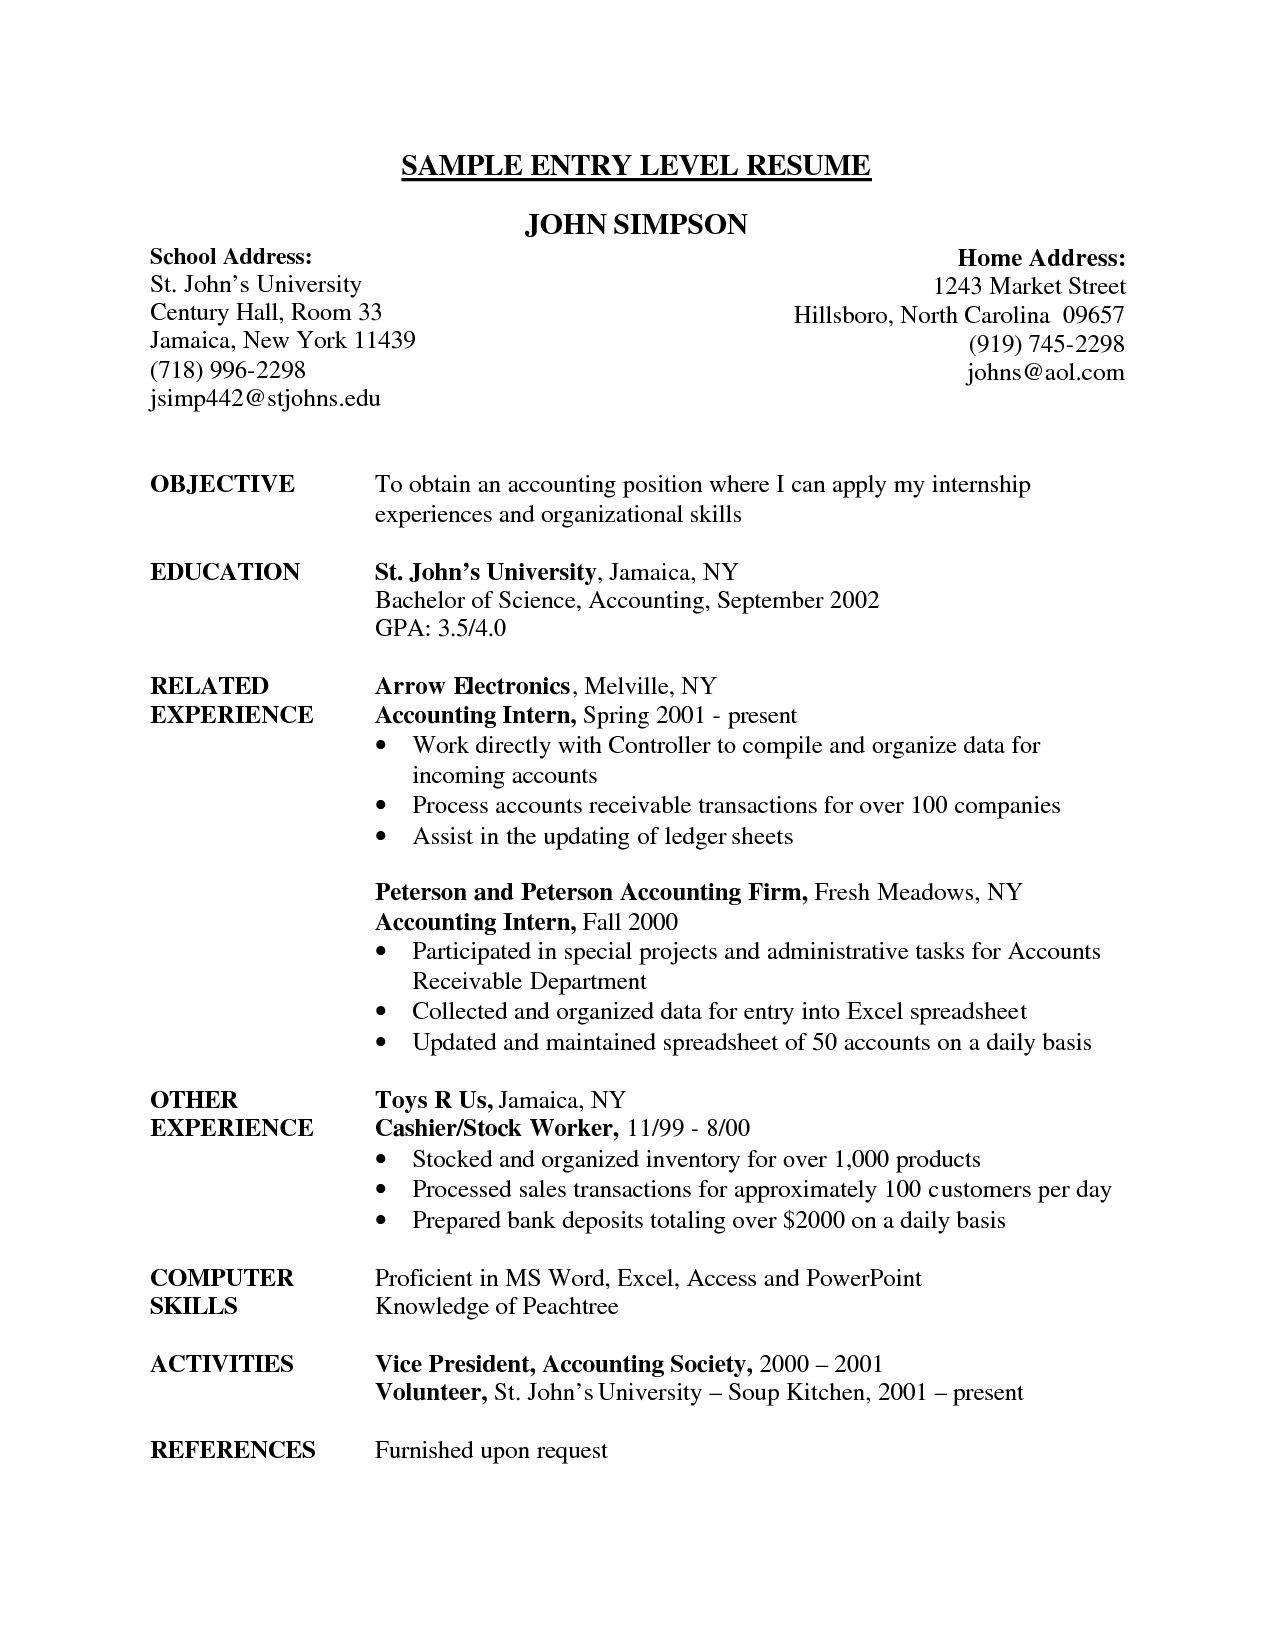 resume format entry level